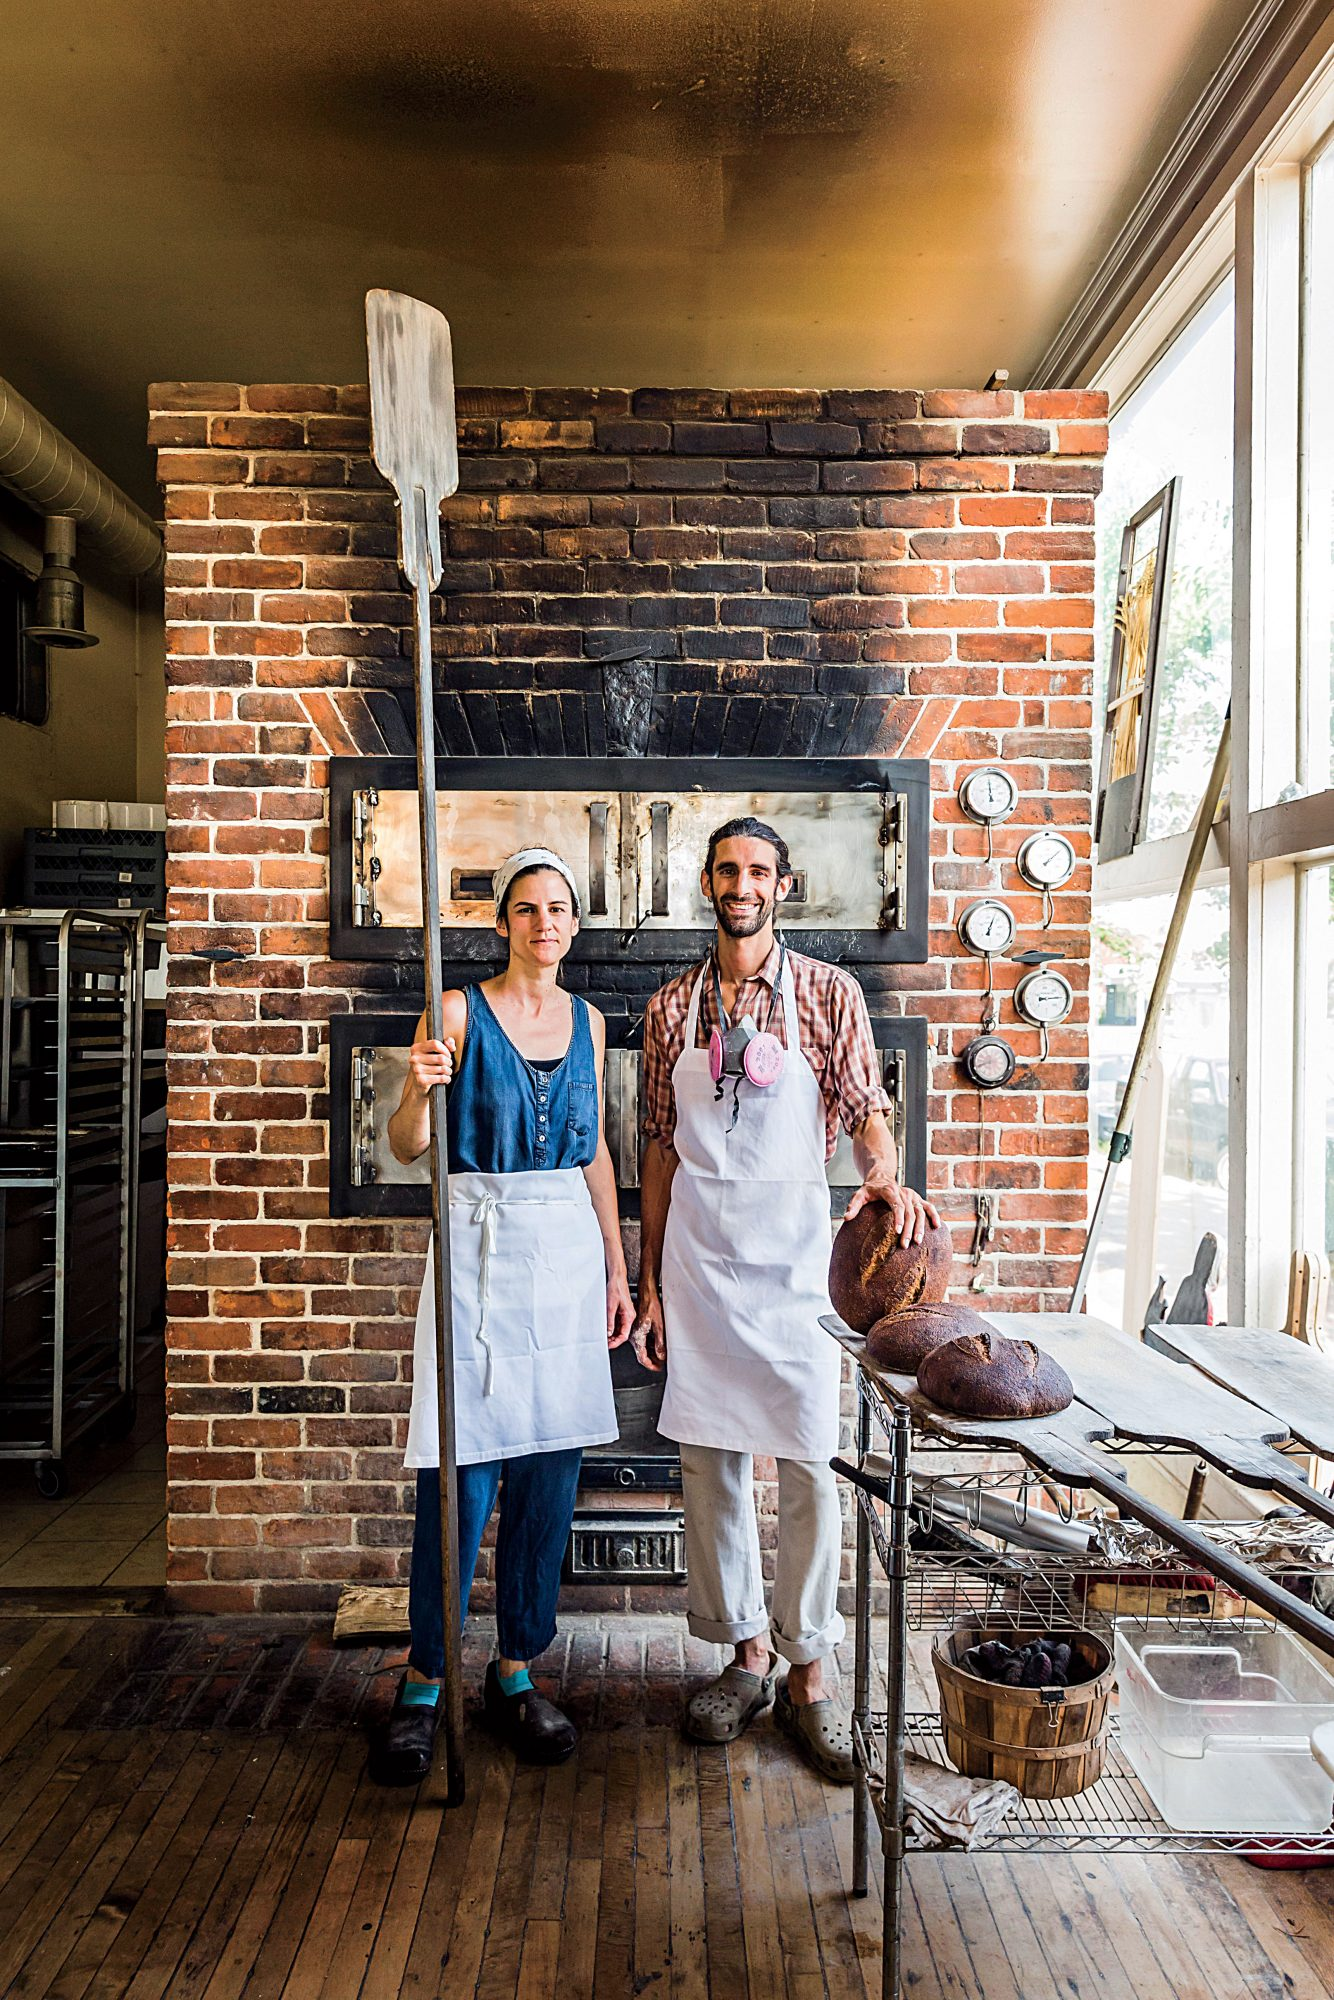 Sub Rosa Bakery owners Evin and Evrim Dogu